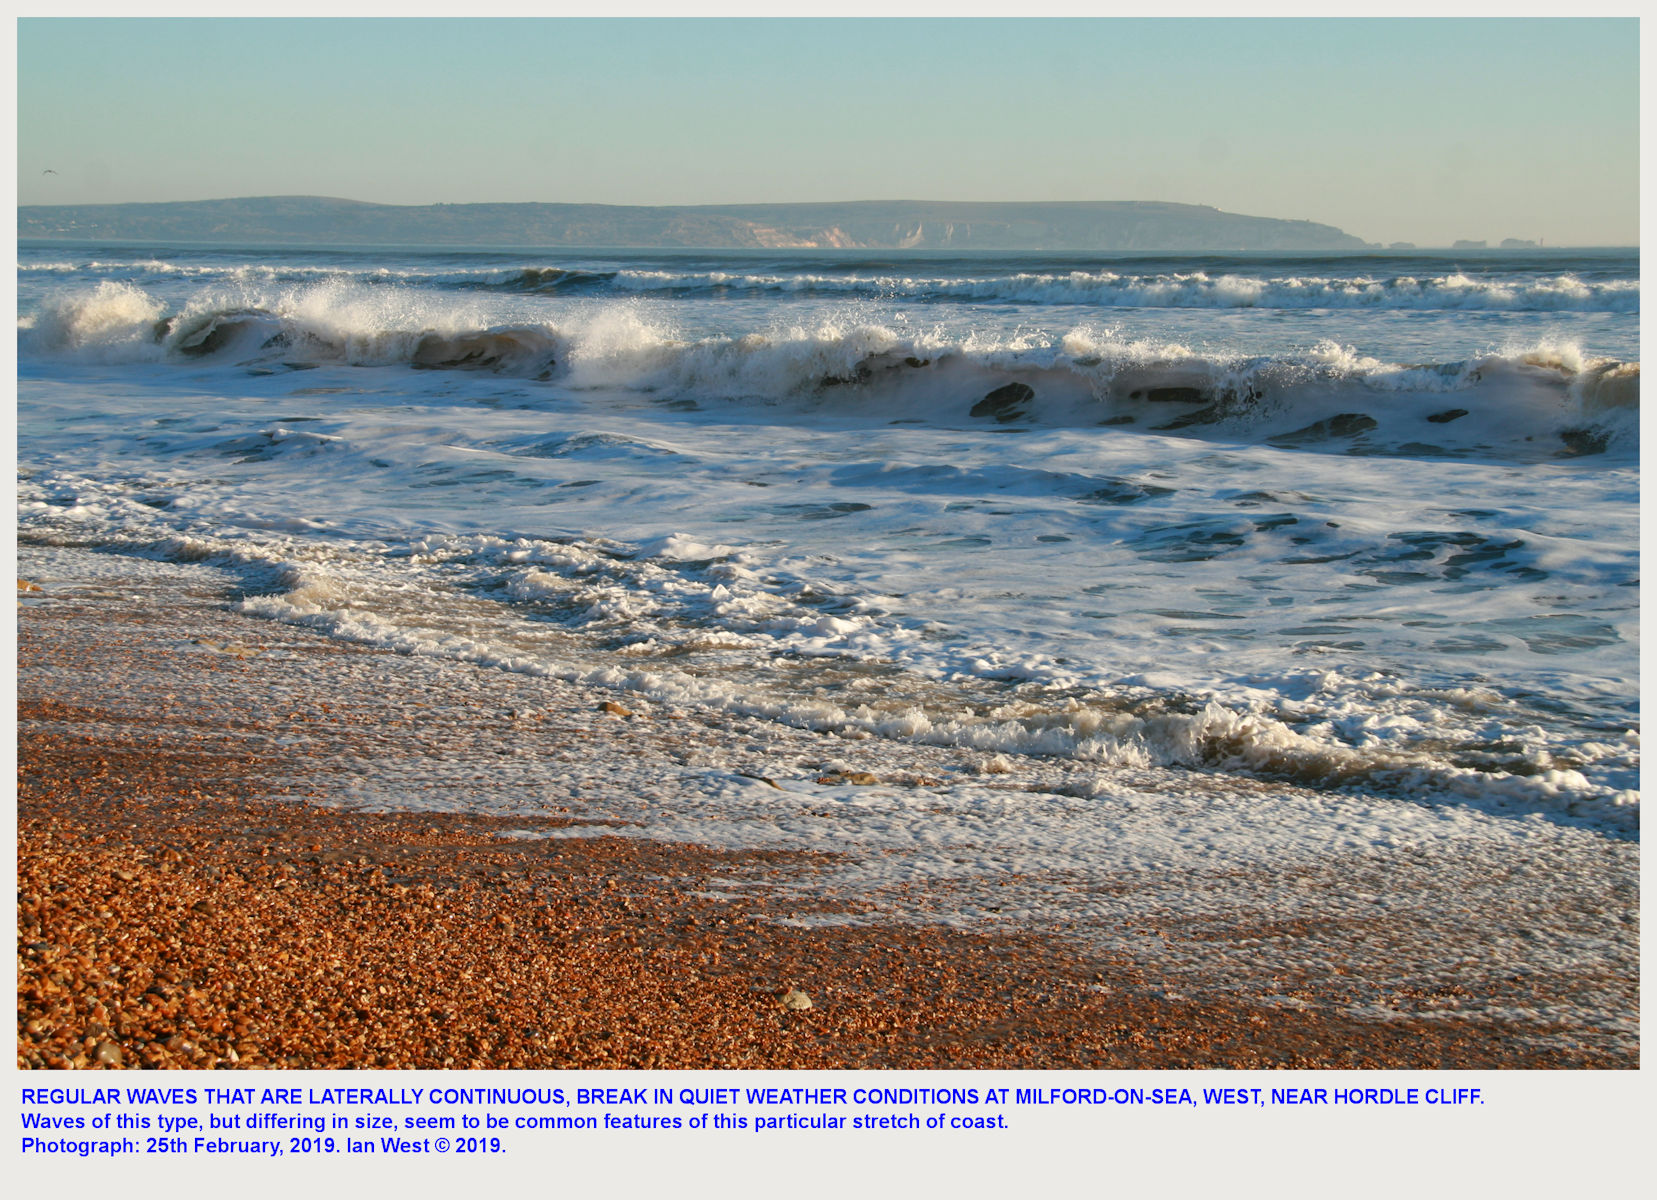 Regular, long waves breaking at Milford-West-Hordle-beach, in quiet weather conditions, 25th March 2019